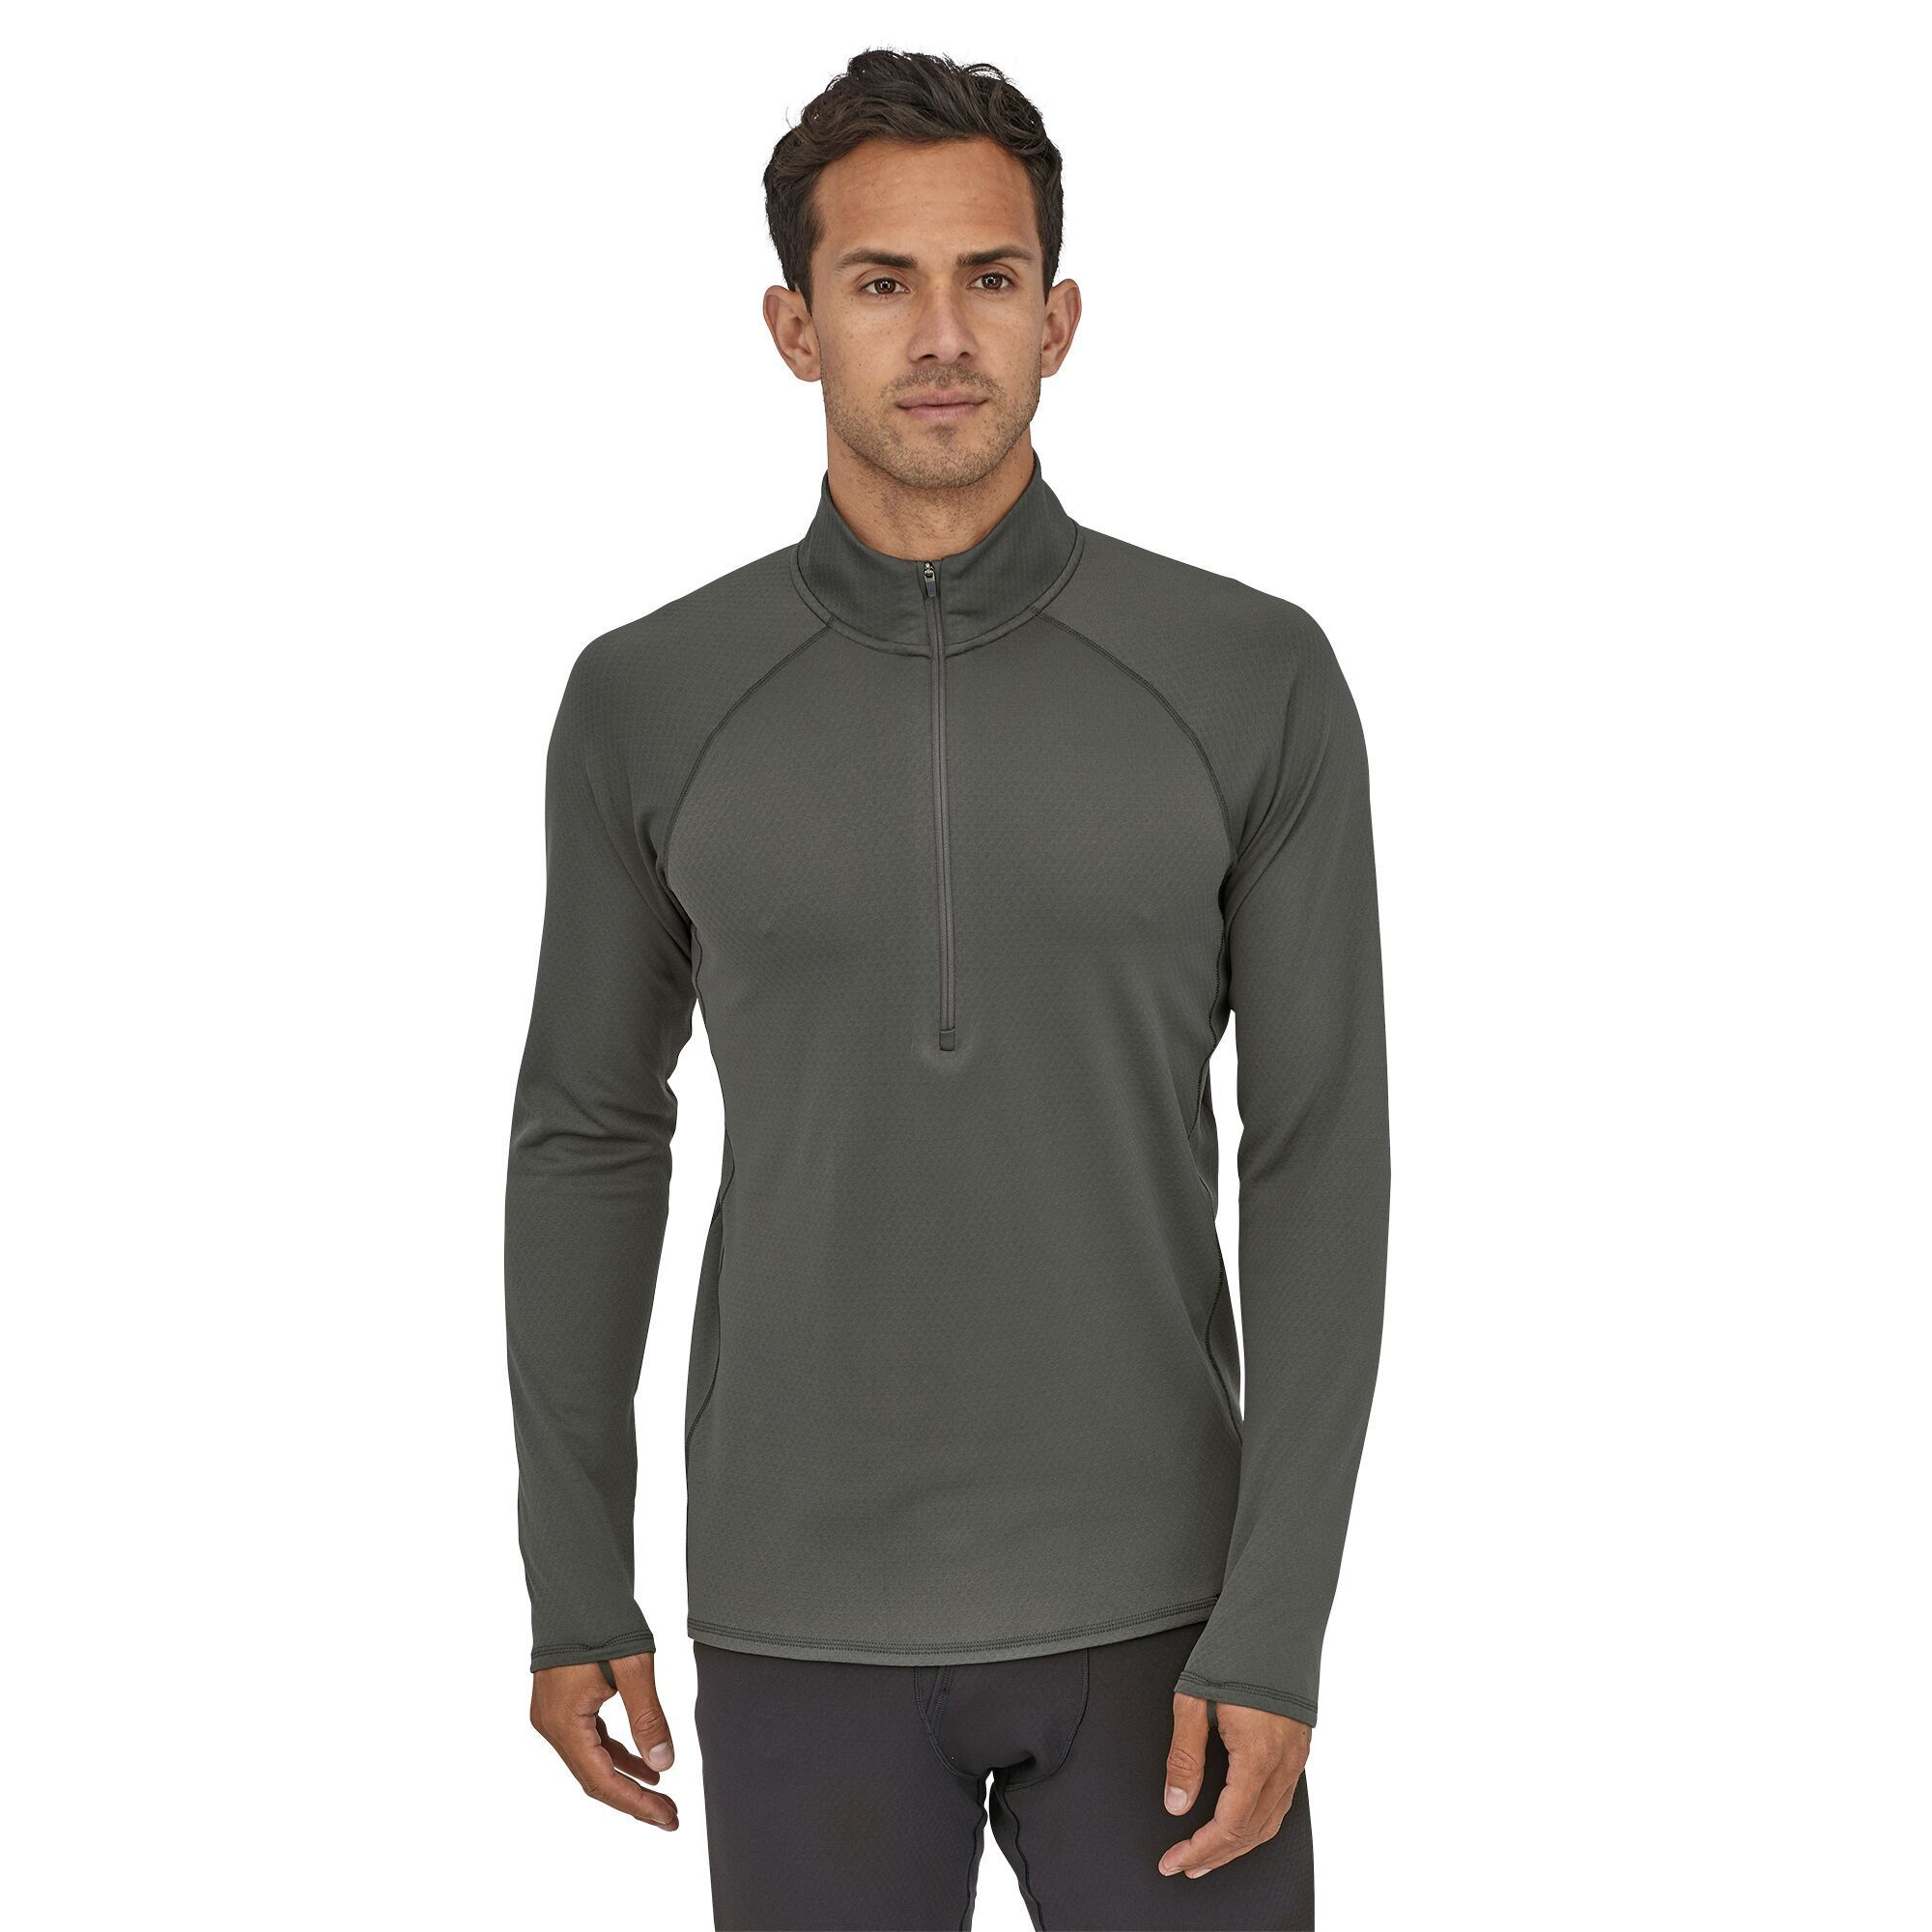 Patagonia - Capilene Midweight Baselayer Zip-Neck - Recycled Polyester - Weekendbee - sustainable sportswear